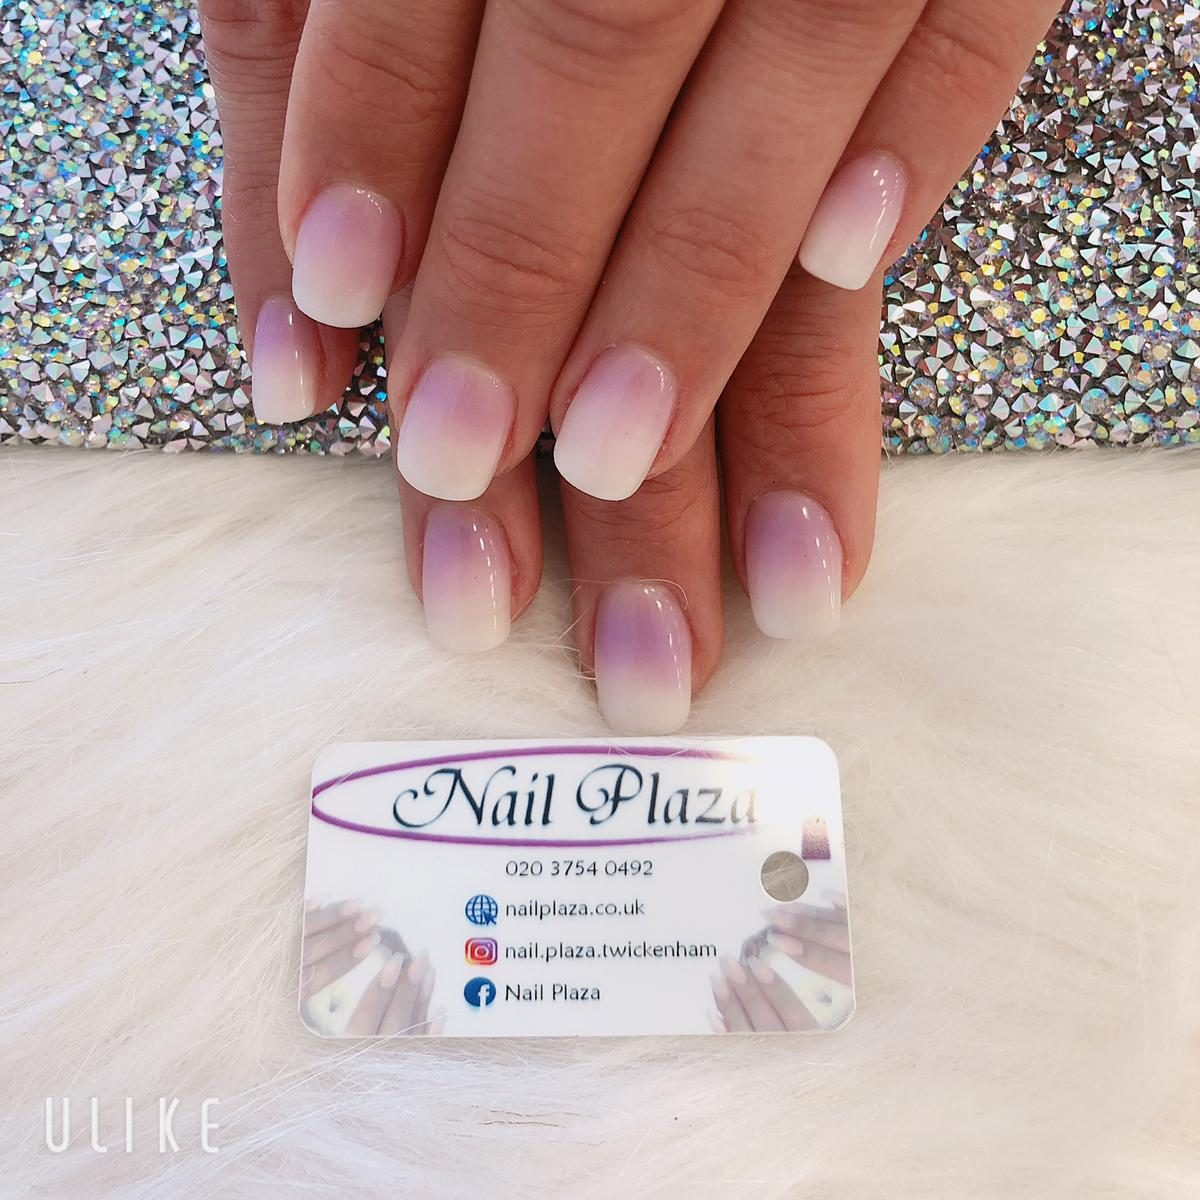 square shape acrylic nail extensions with ombre effect